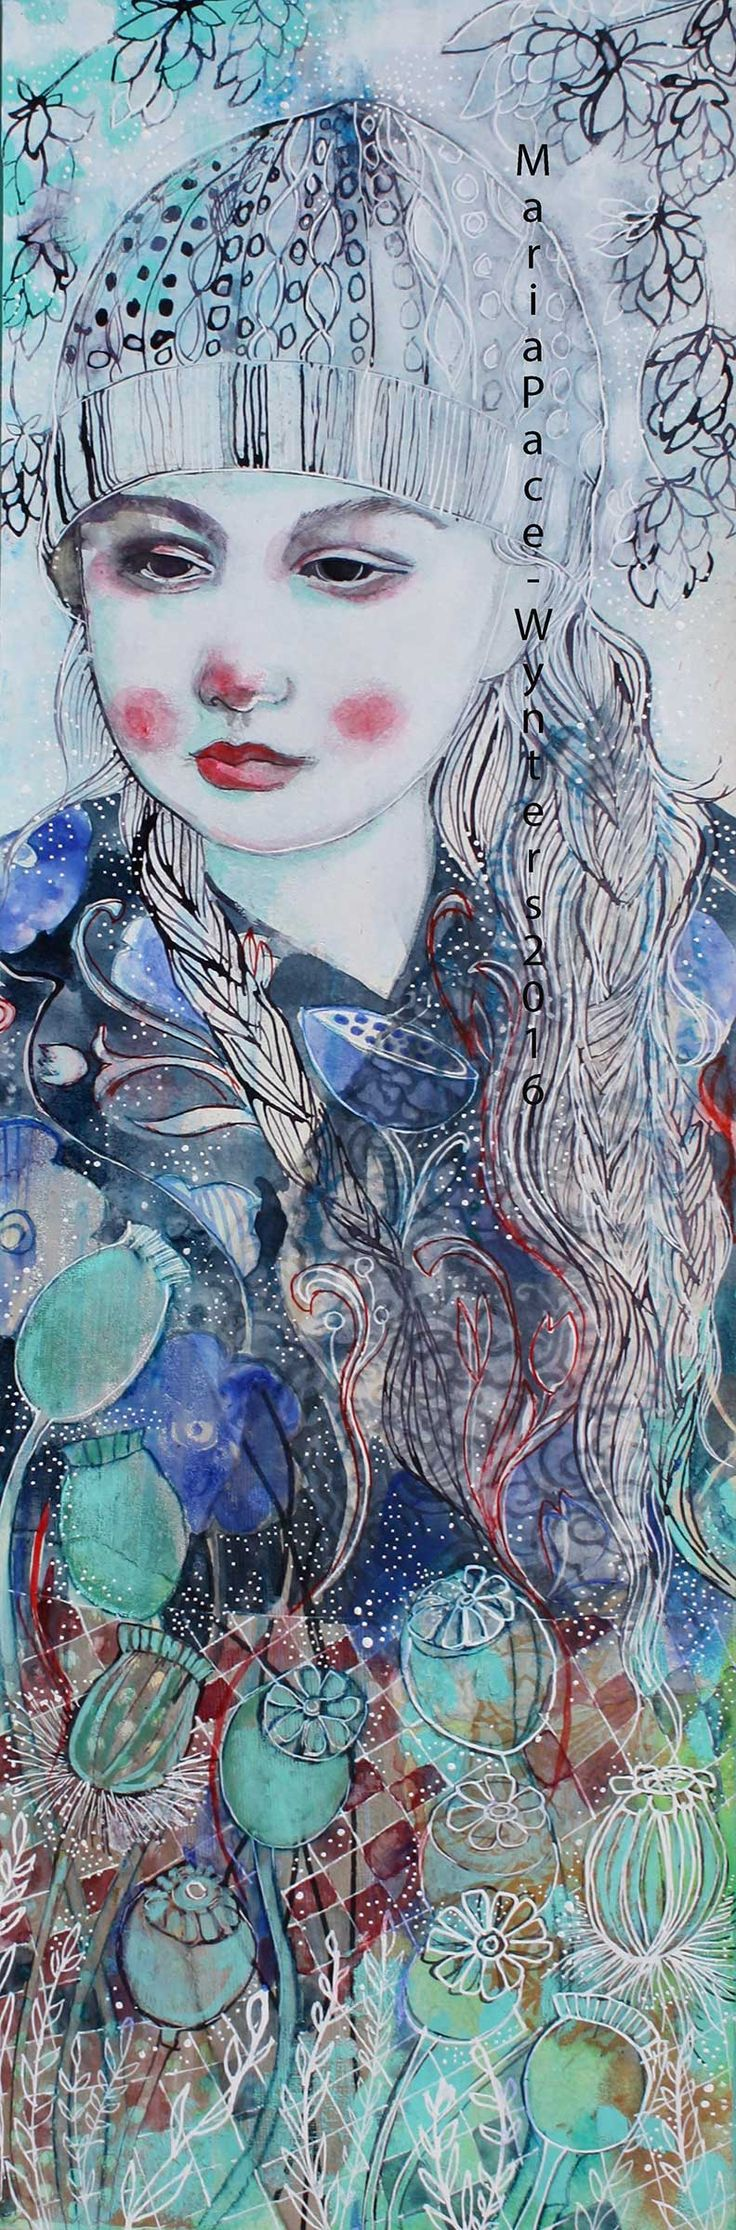 Maria Pace-Wynters - this is a 8″x24″ mixed media painting on paper covered canvas. The sides are 1.5″ deep and are painted turquoise.